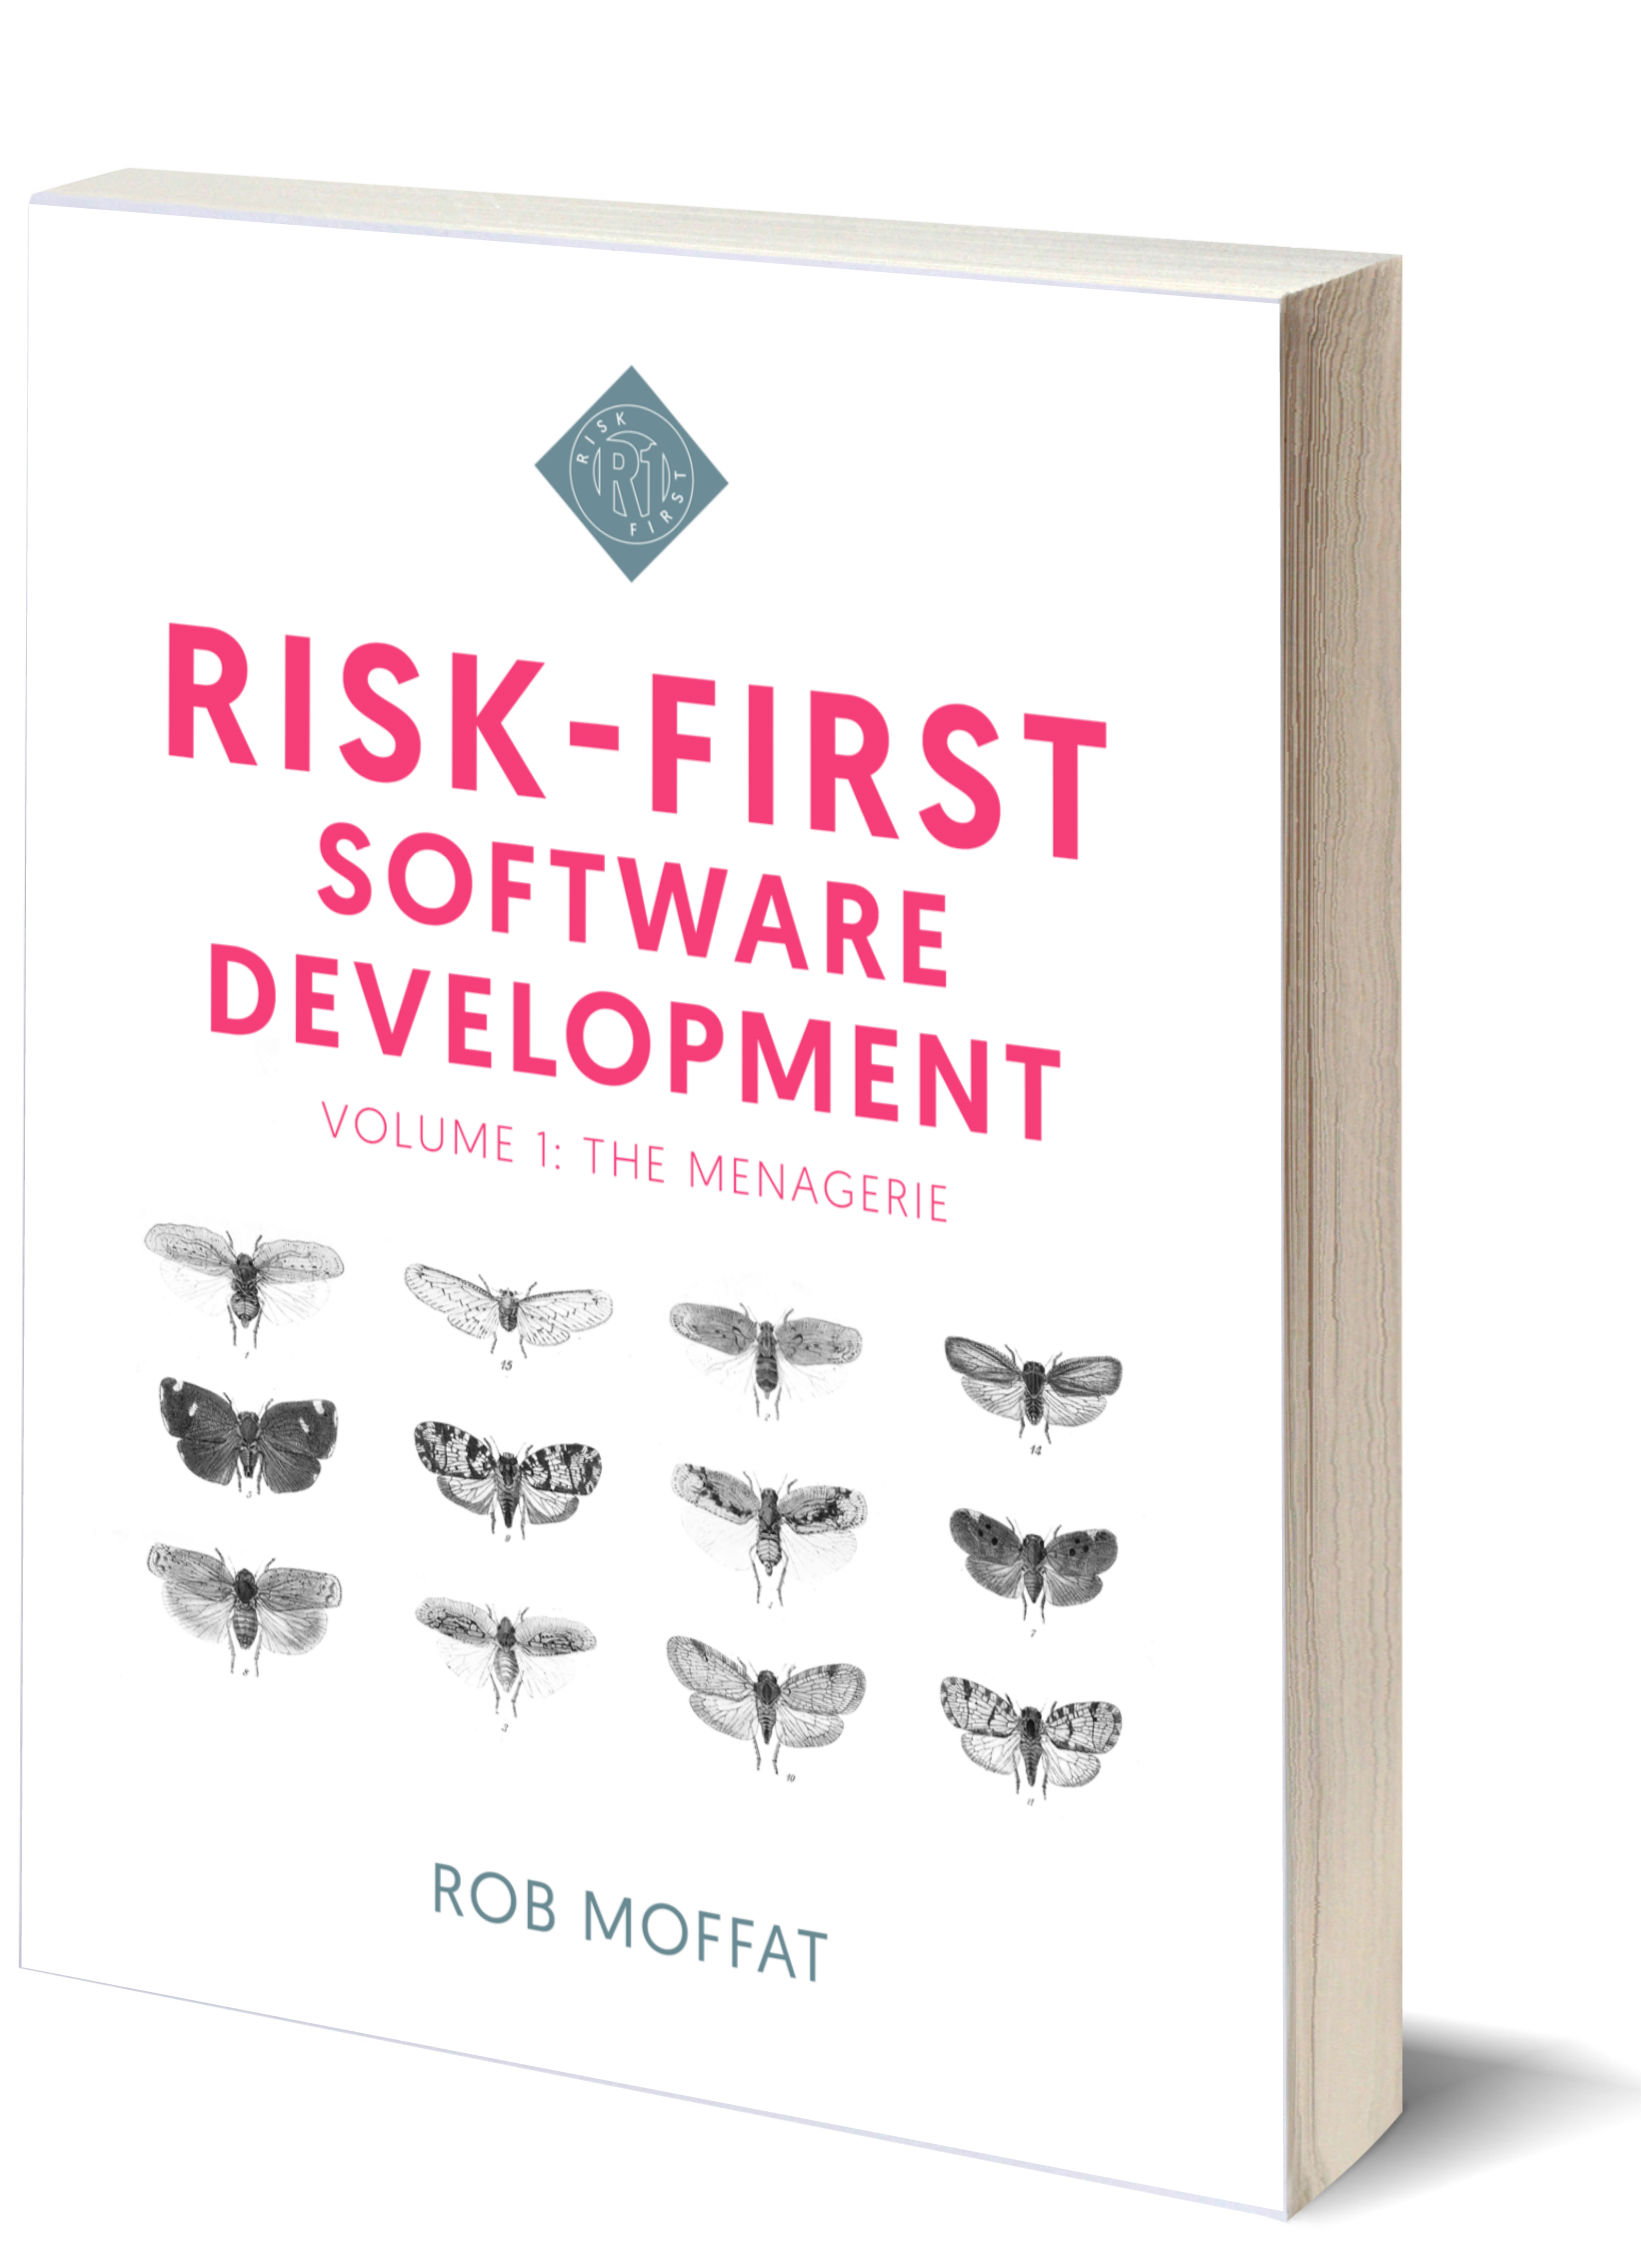 Risk-First Software Development: Volume 1, The Menagerie